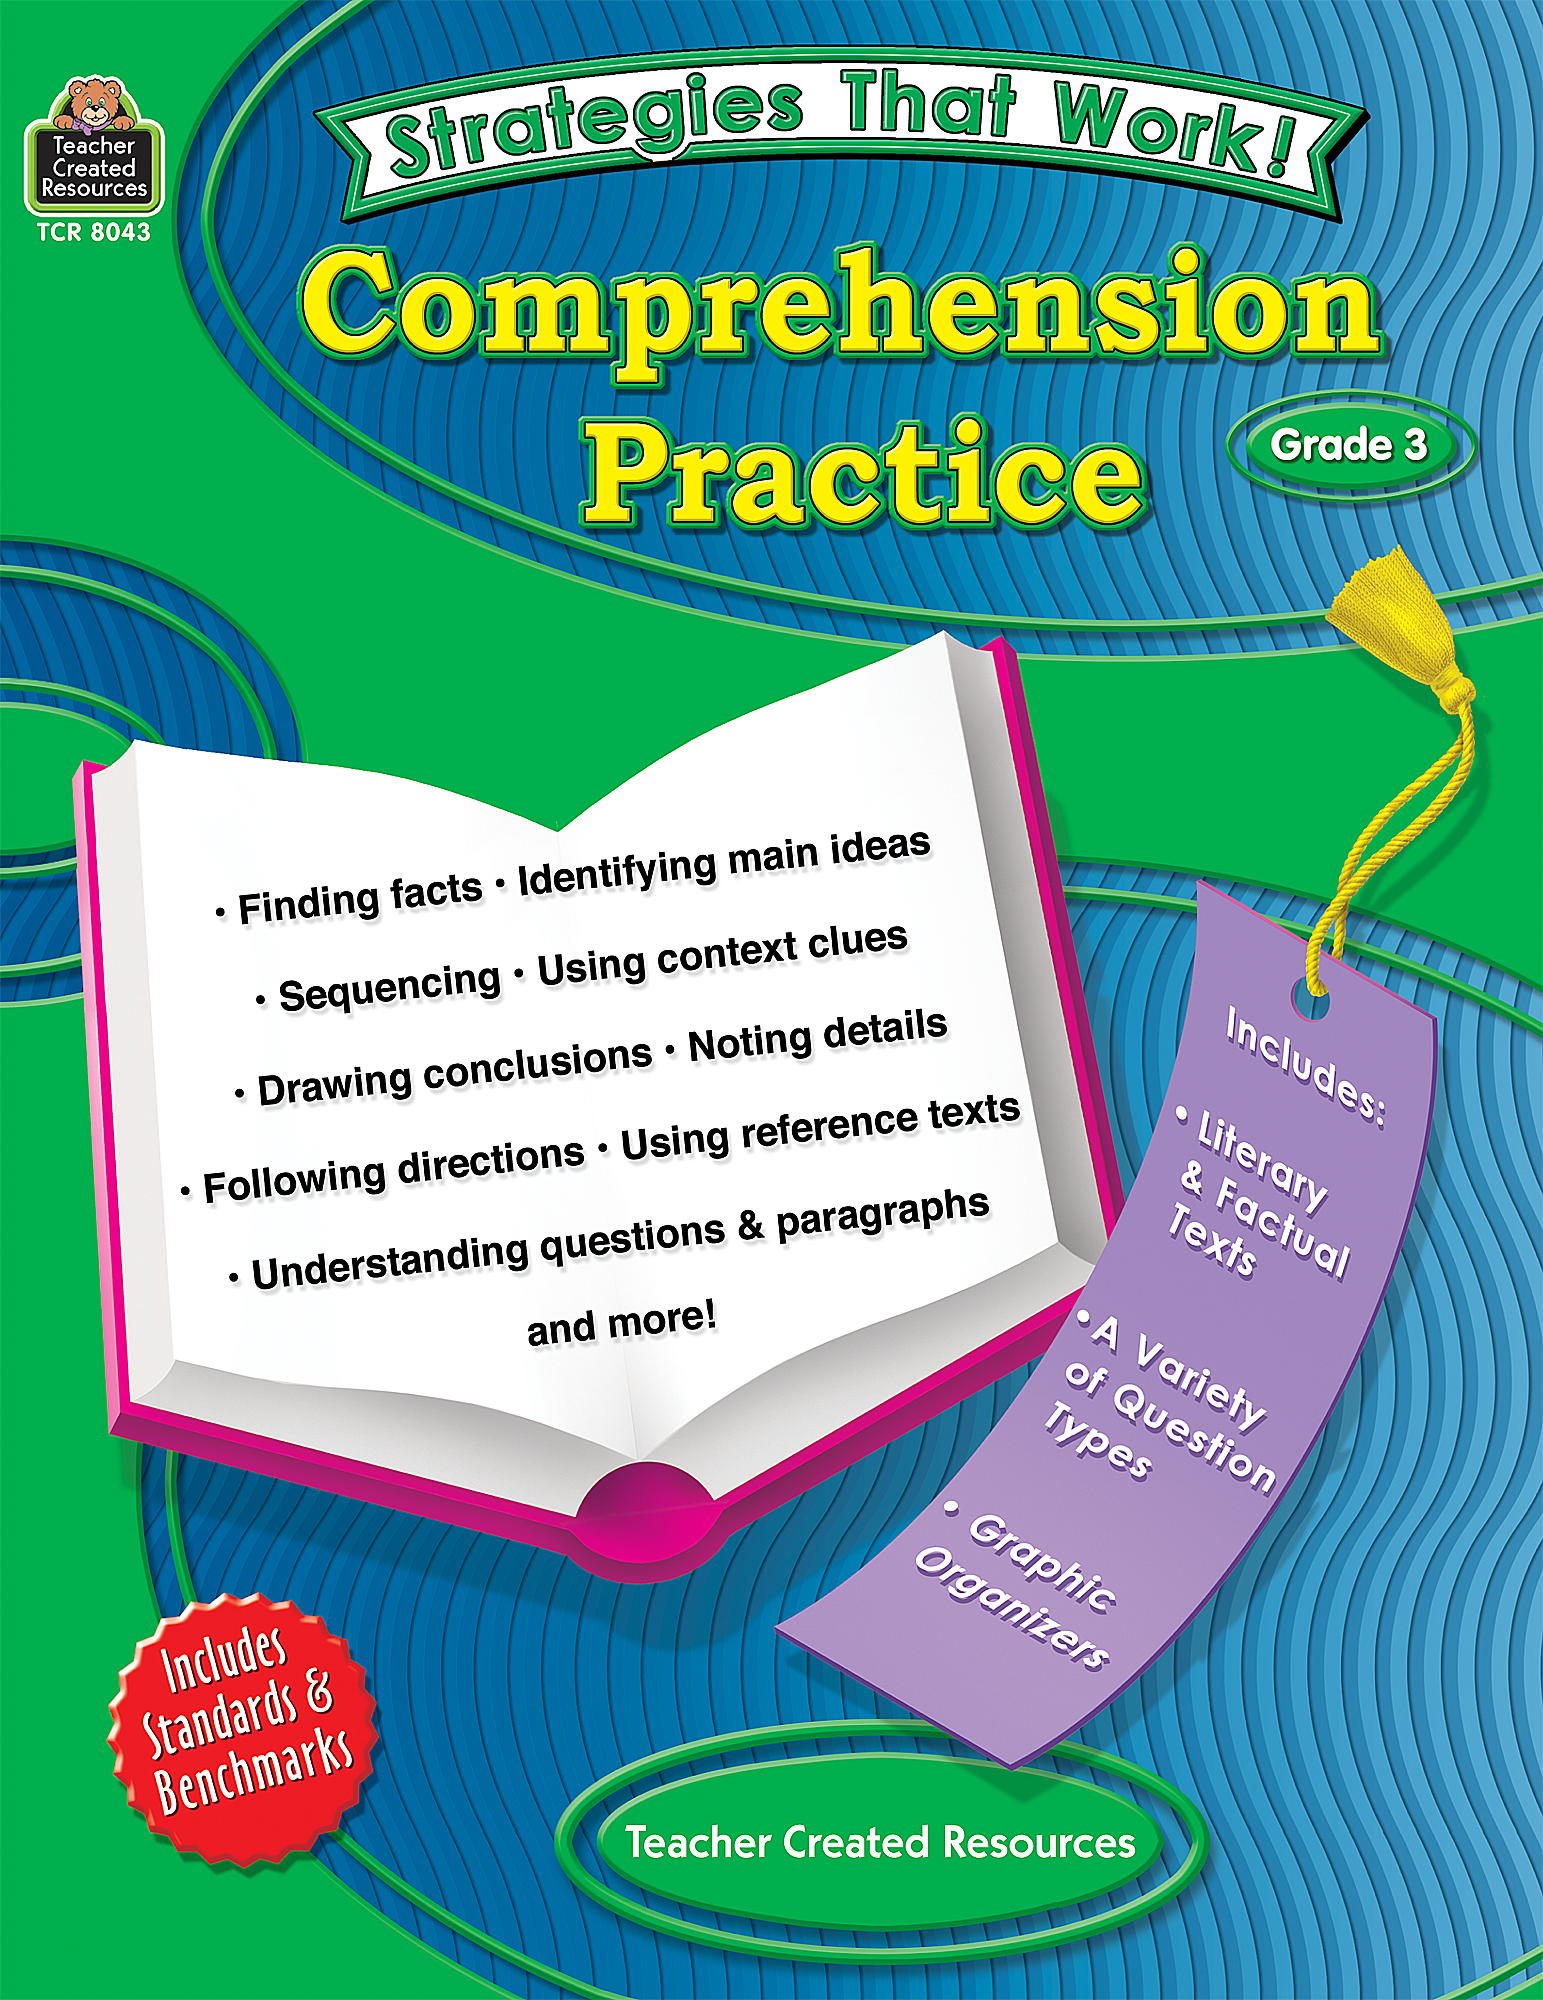 - Strategies That Work: Comprehension Practice, Grade 3 - TCR8043